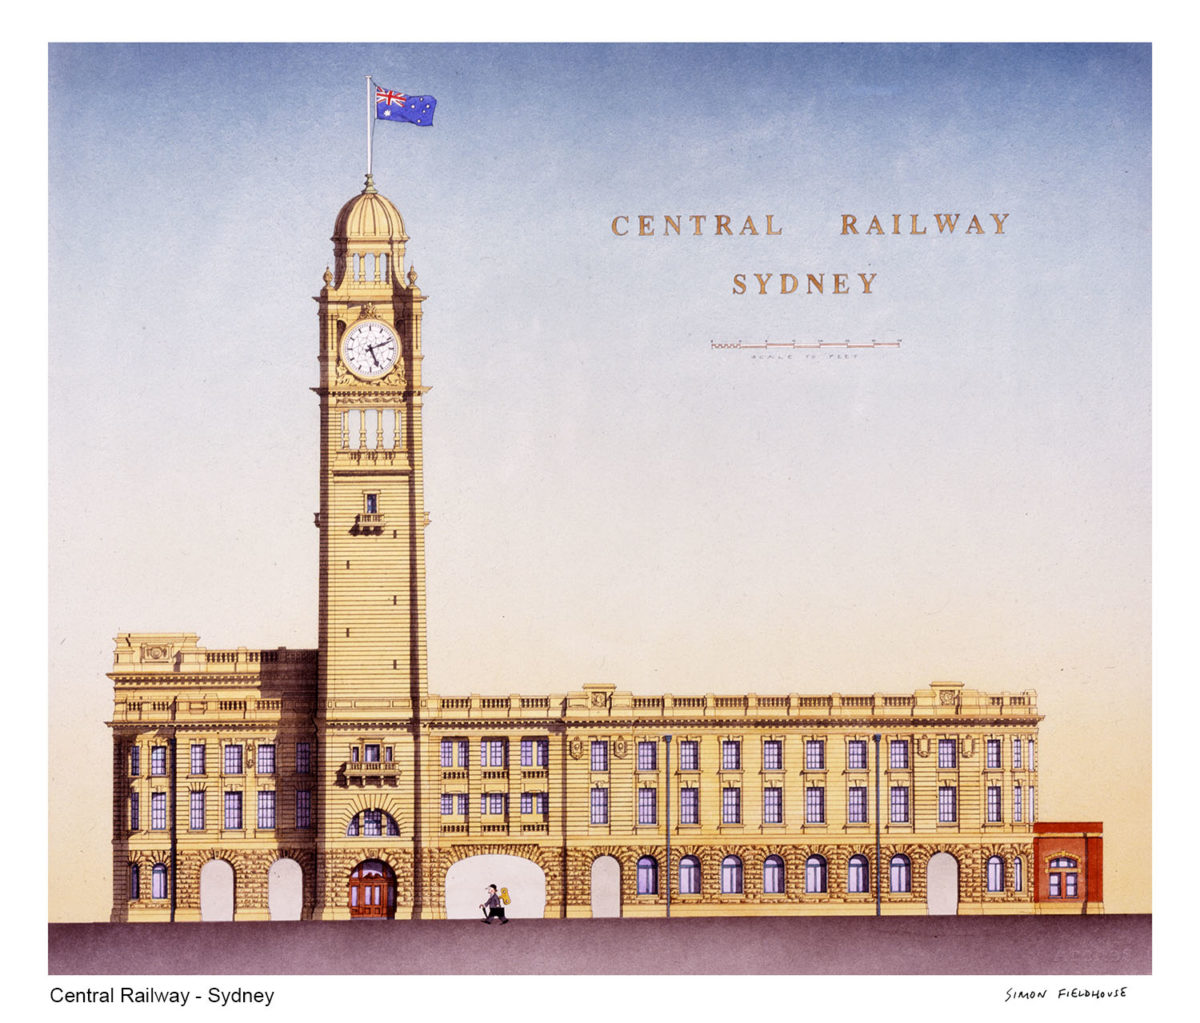 Central Railway Station Sydney